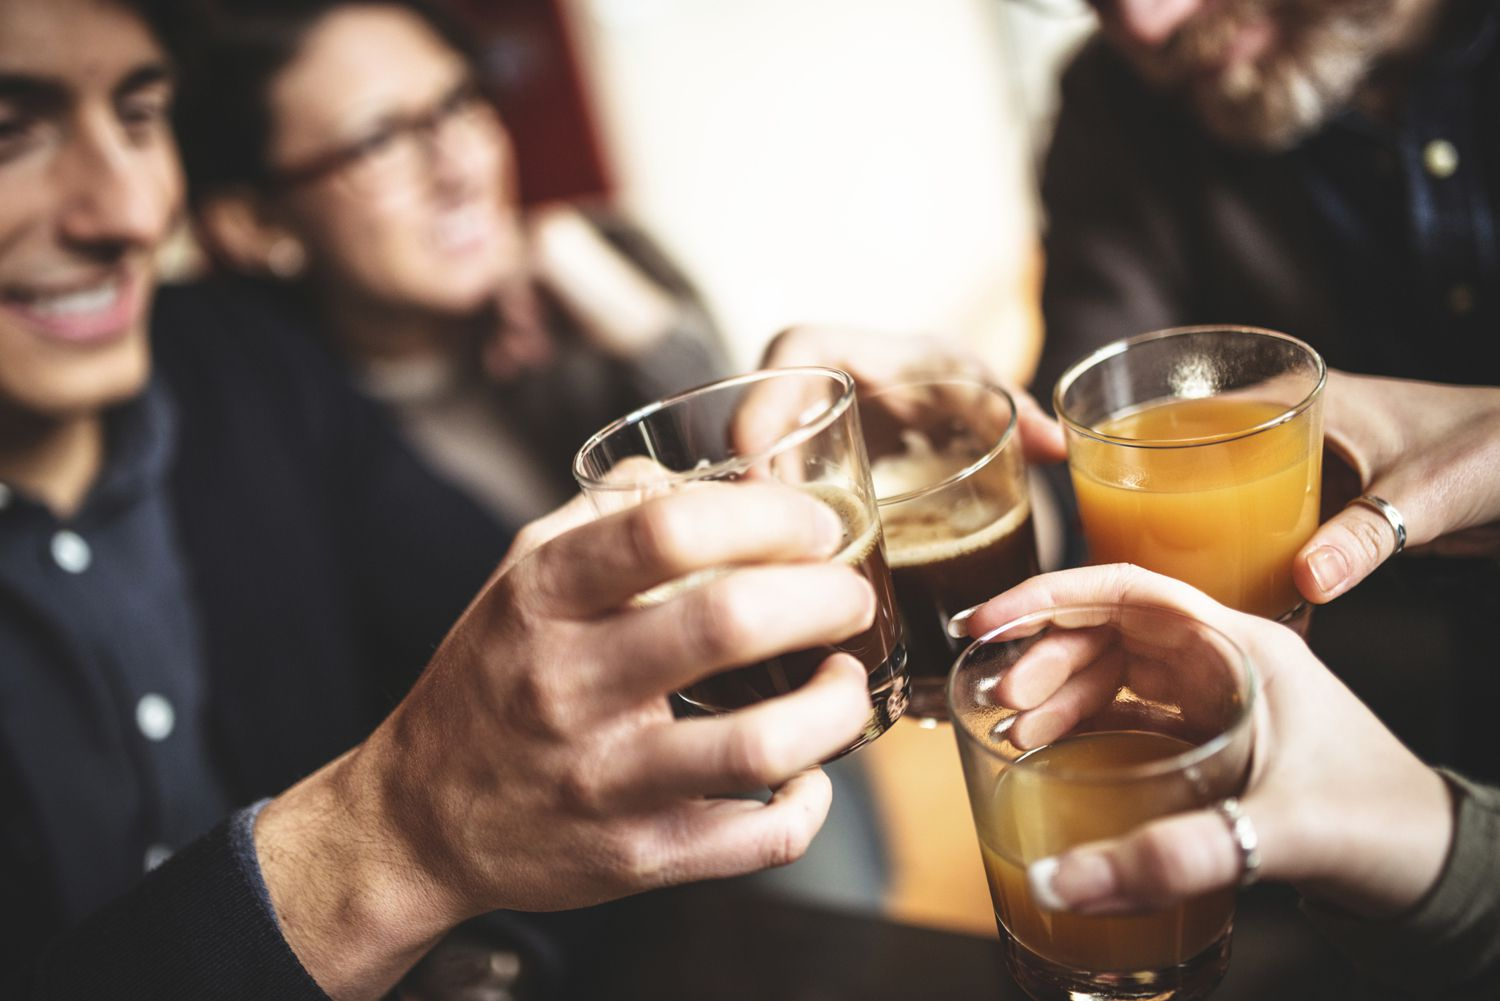 Drinking Alcohol Causes Calf Pain